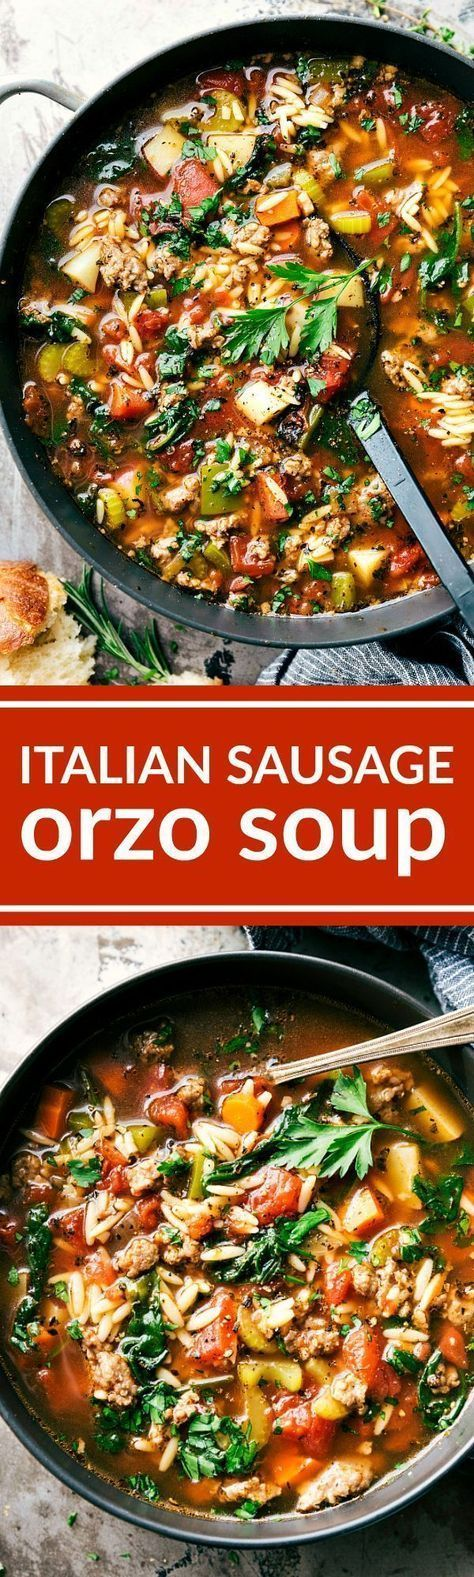 ITALIAN SAUSAGE ORZO SOUP! A delicious and simple to make Italian sausage soup with plenty of veggies (clear out your fridge!) and orzo pasta. via http://chelseasmessyapron.com